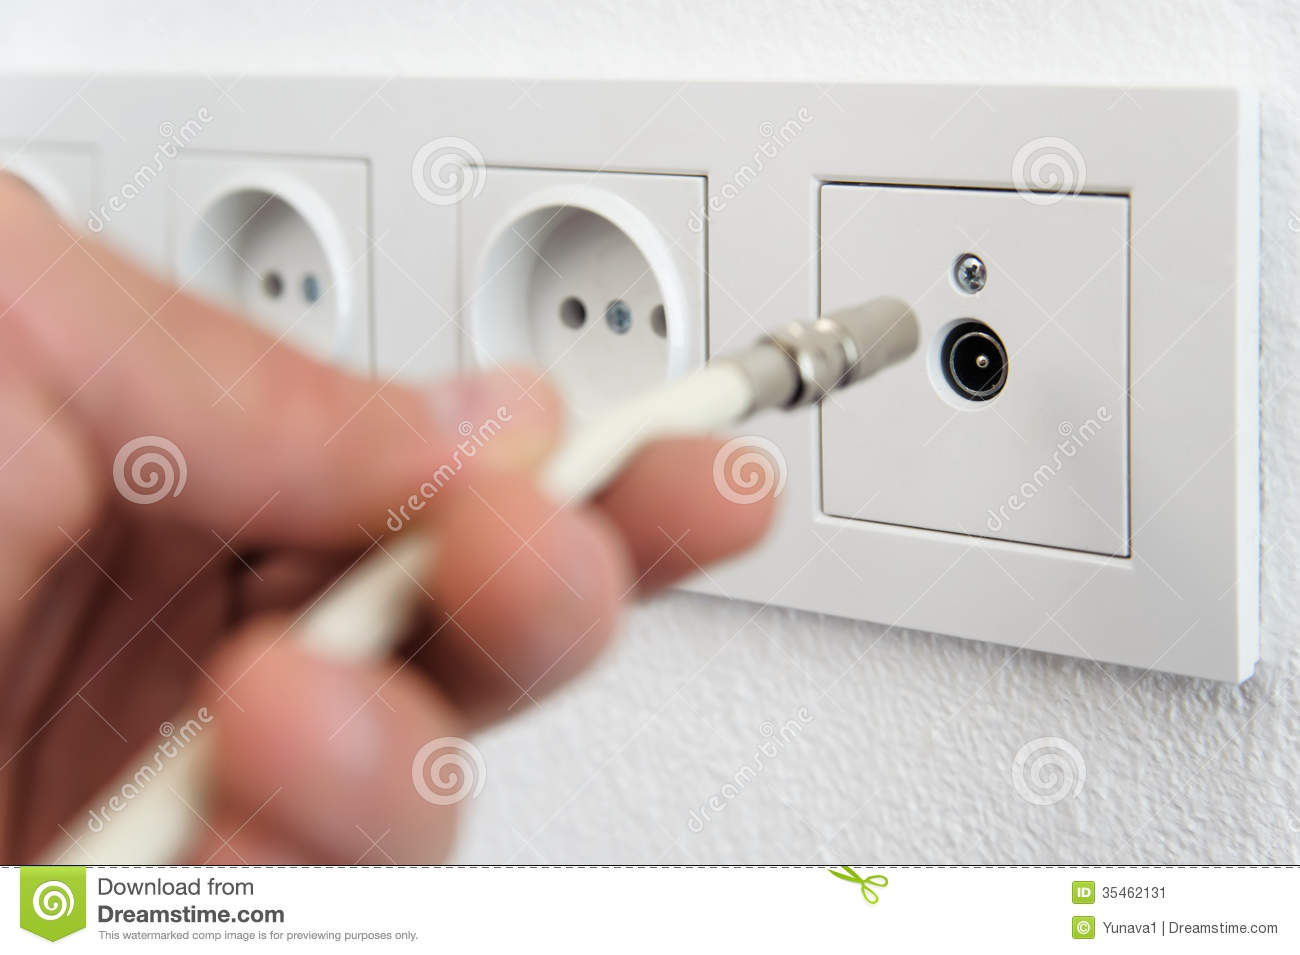 Inserts The Antenna Cable To The Tv Outlet Stock Image